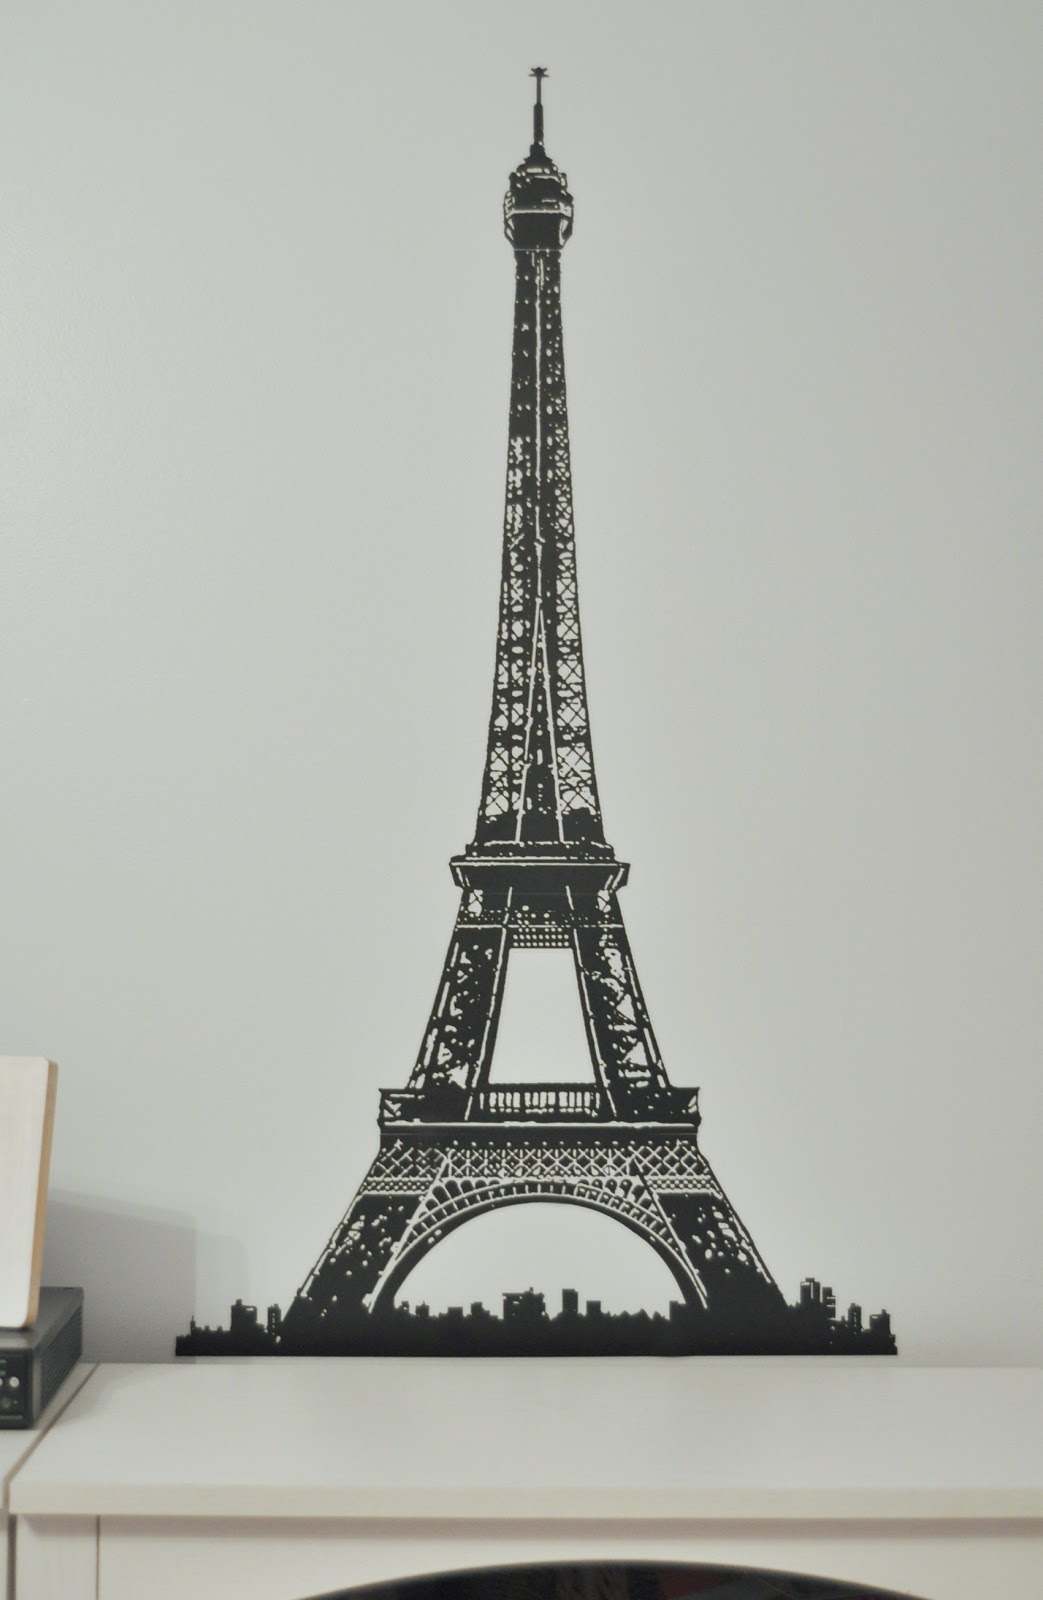 She 39 s crafty paris themed bedroom - Eiffel tower decor for bedroom ...